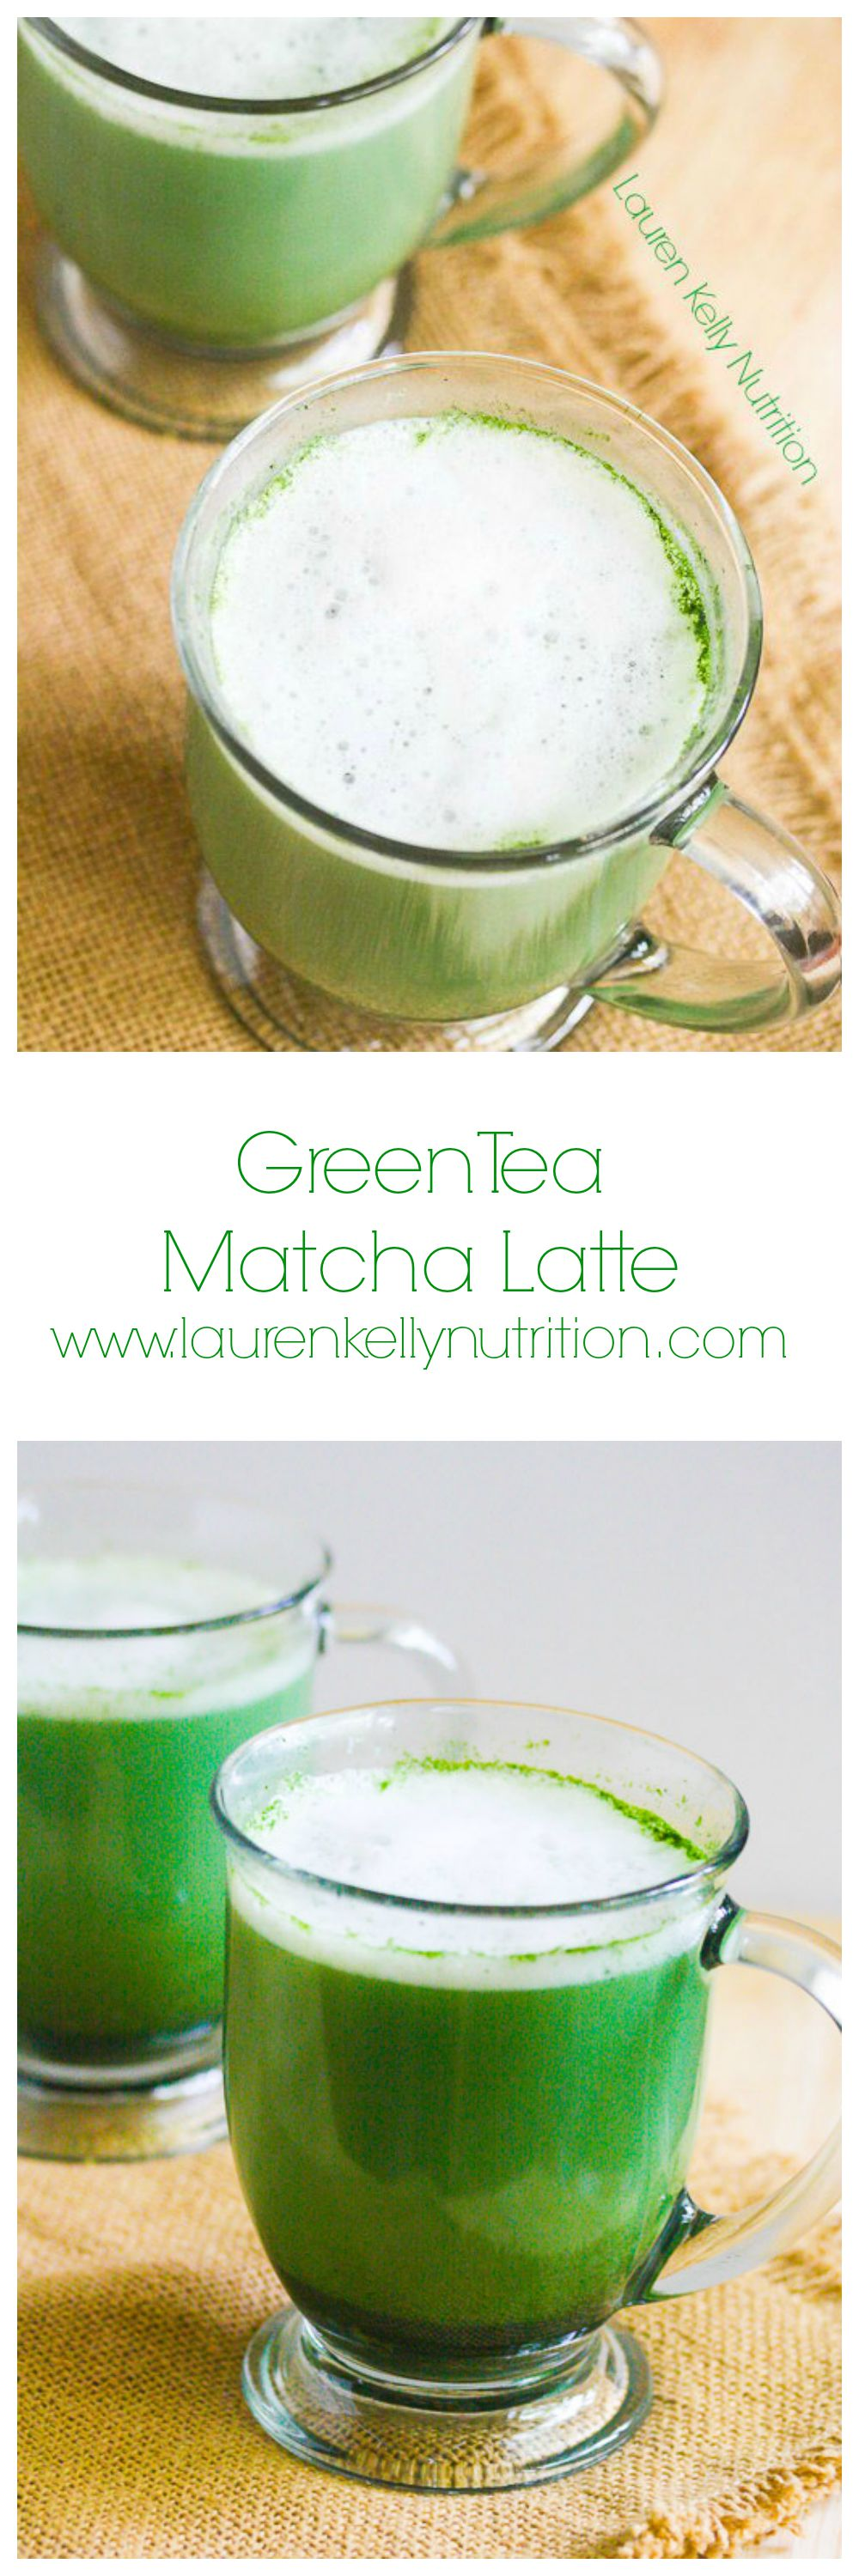 These healthy Green Tea Matcha Latte is filled with antioxidants and is lightly sweet.  This can be served hot or cold! www.laurenkellynutrition.com